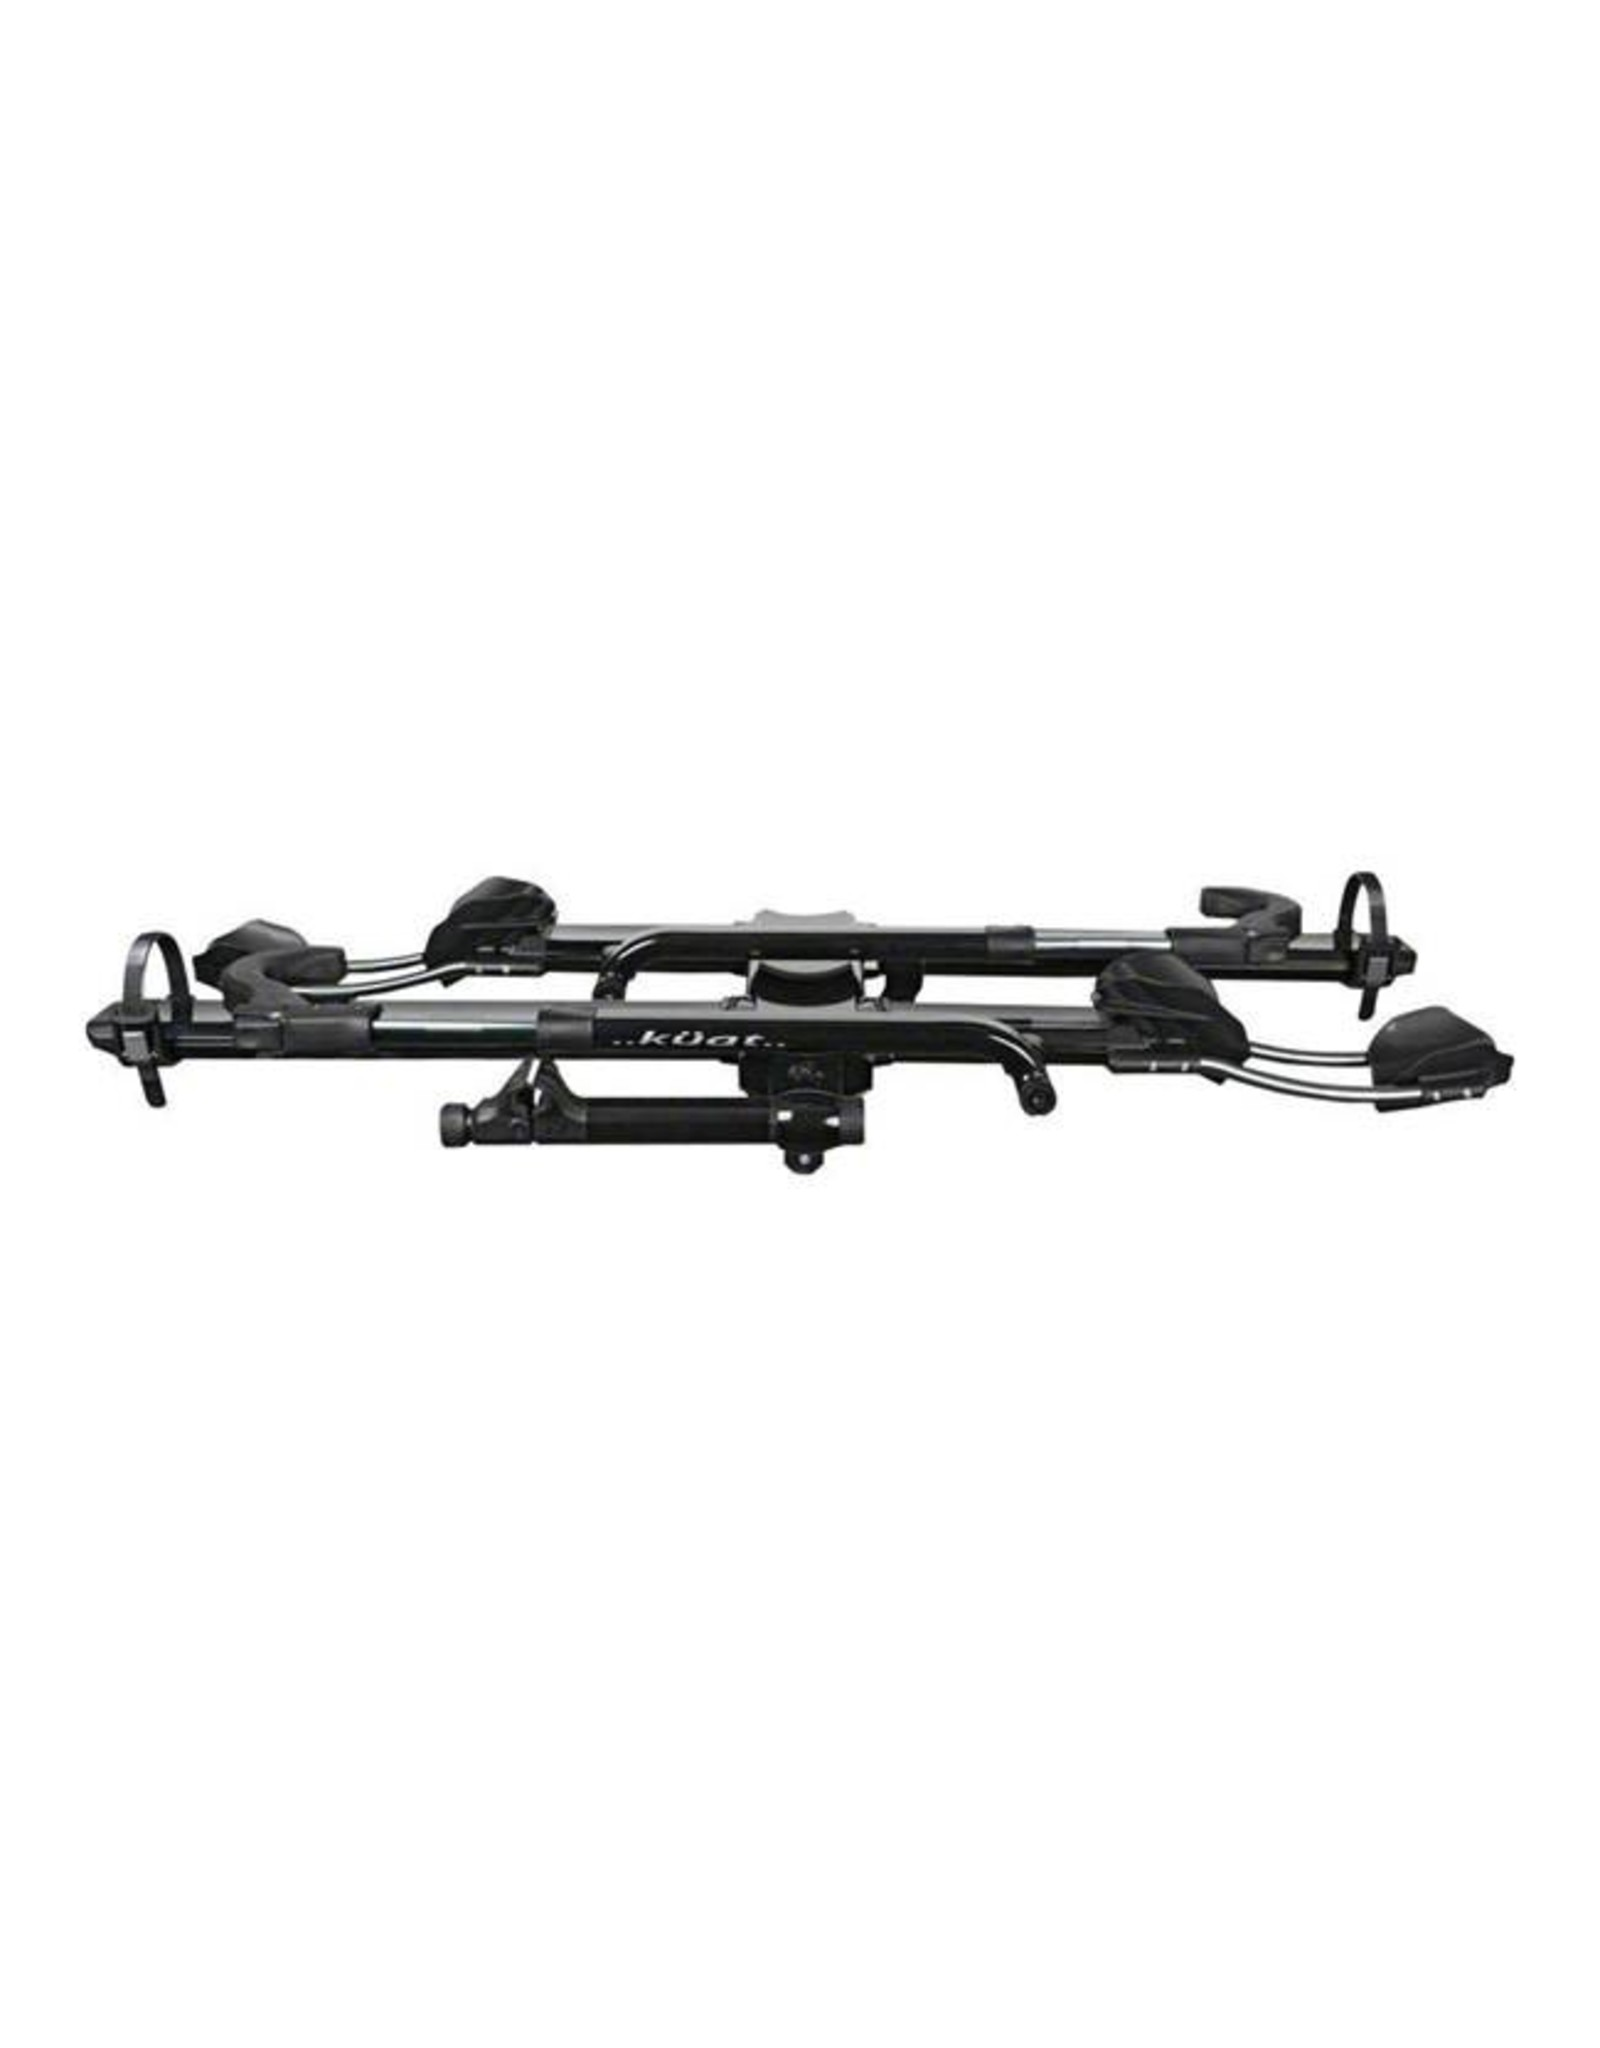 "Kuat Kuat NV 2.0 2-Bike Tray Hitch Rack: Metallic Black and Chrome, 1 1/4"" Receiver"